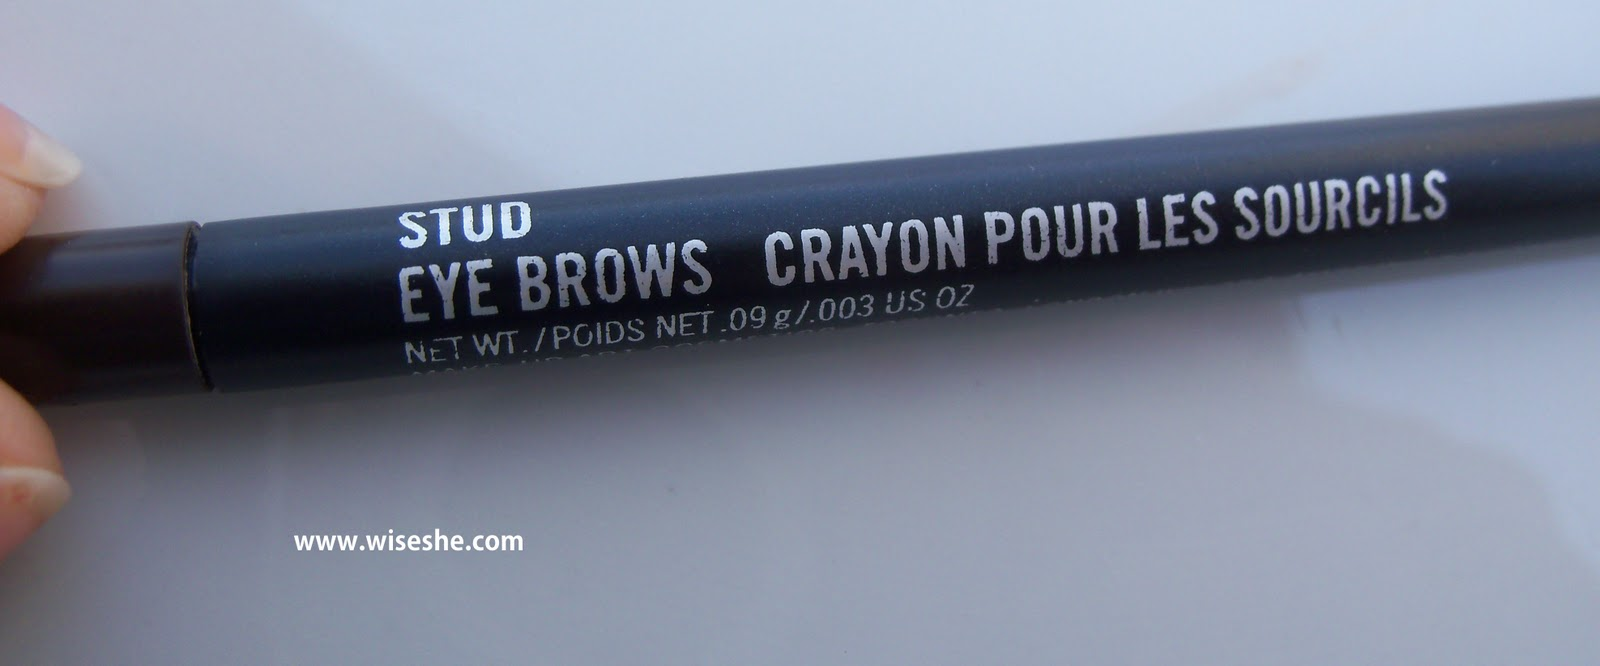 Shaping Eyebrows With Mac Stud Eyebrows Crayon Pour Les Sourcils